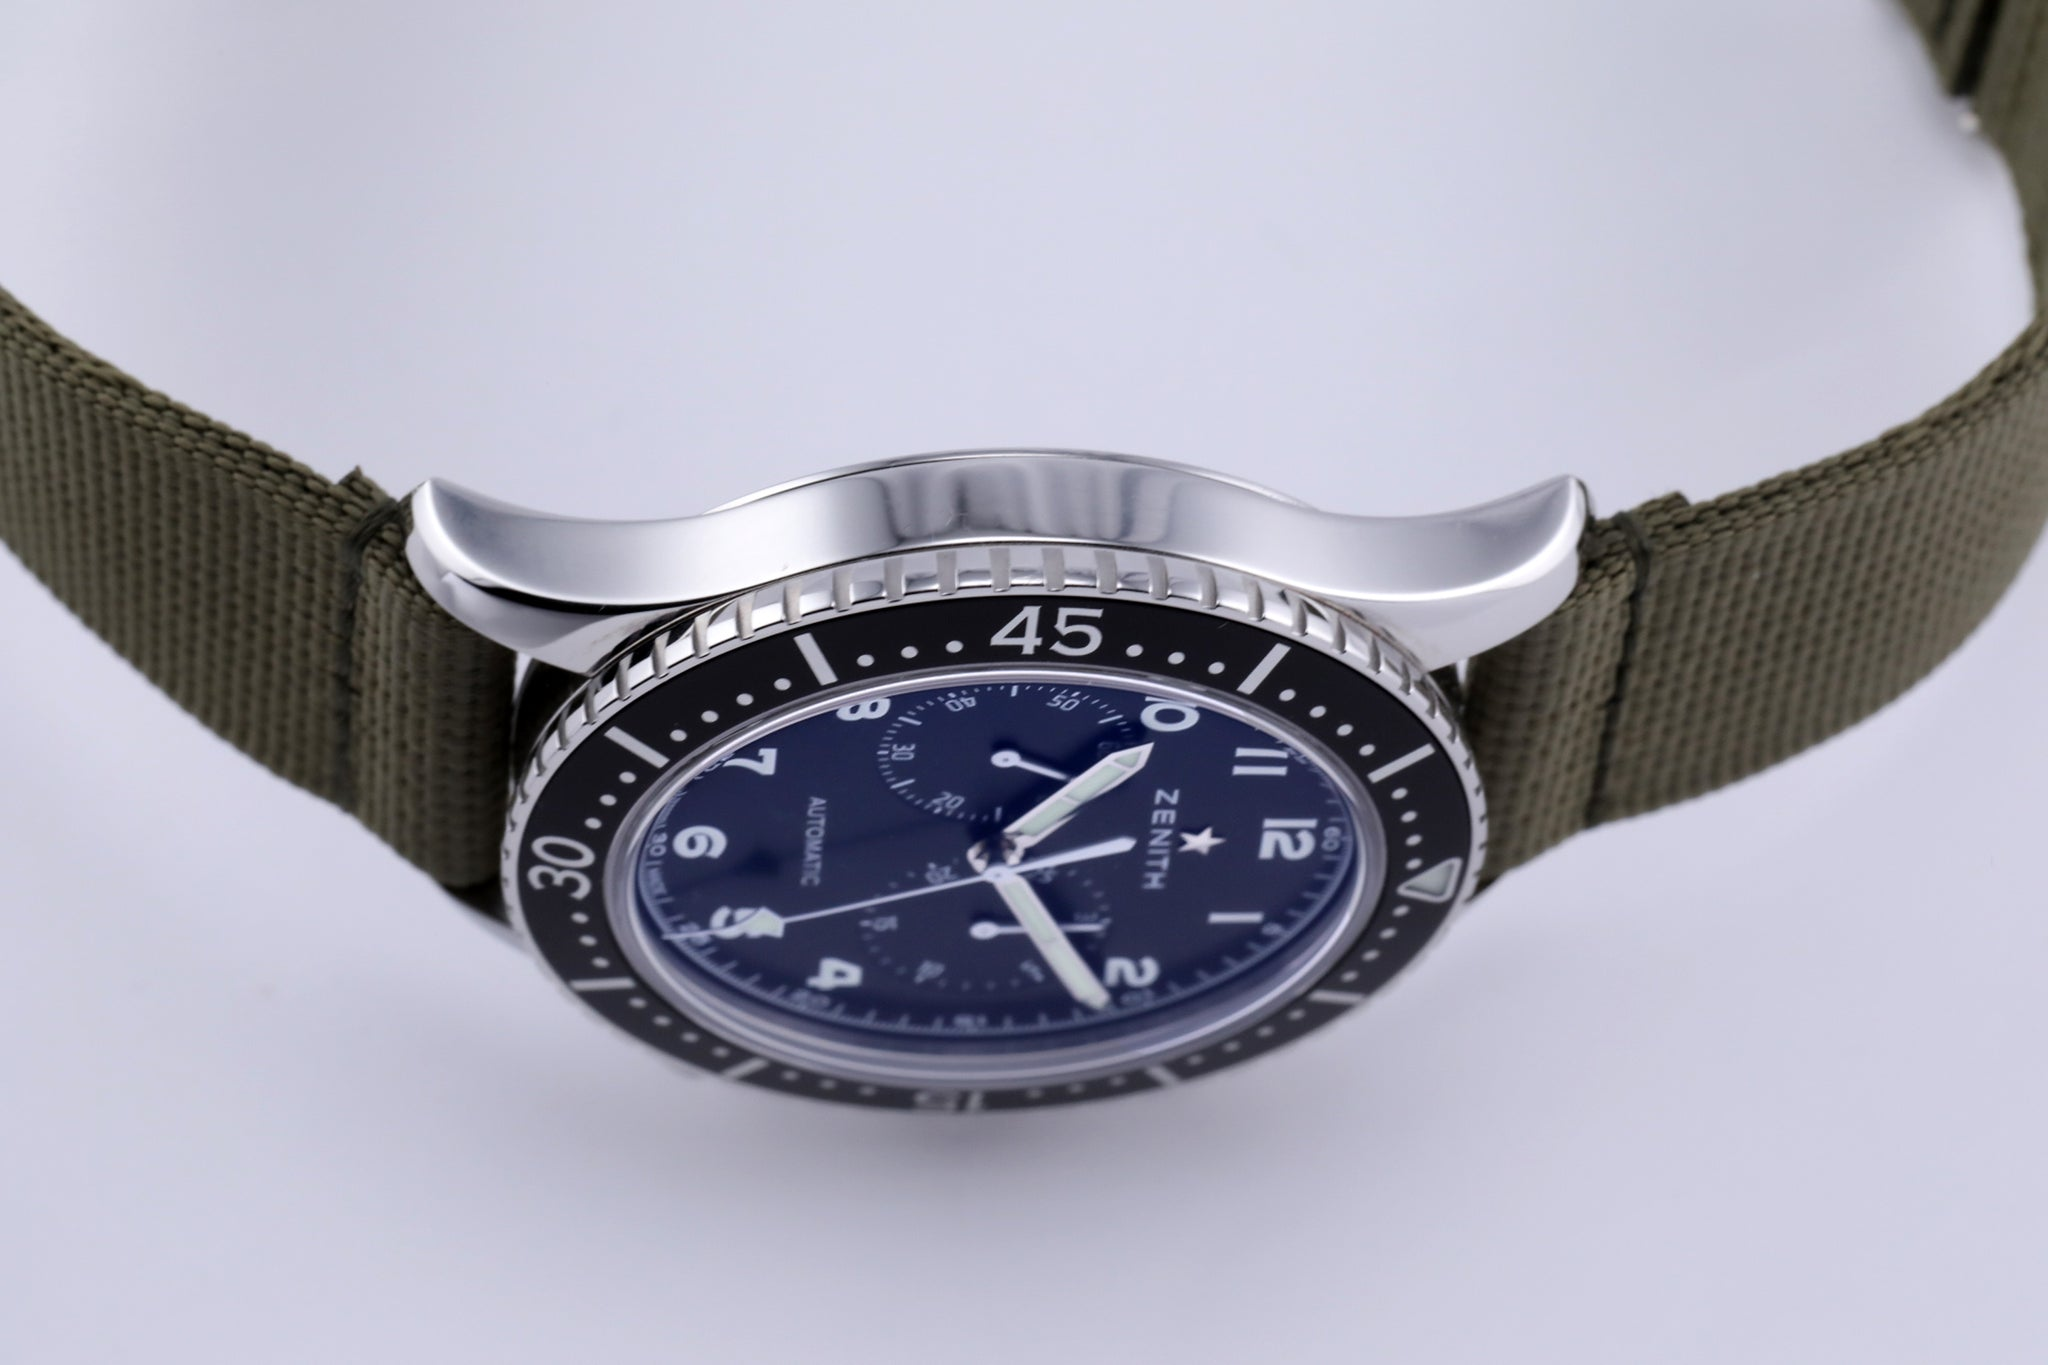 Zenith Pilot Chronograph Tipo CP-2 Military